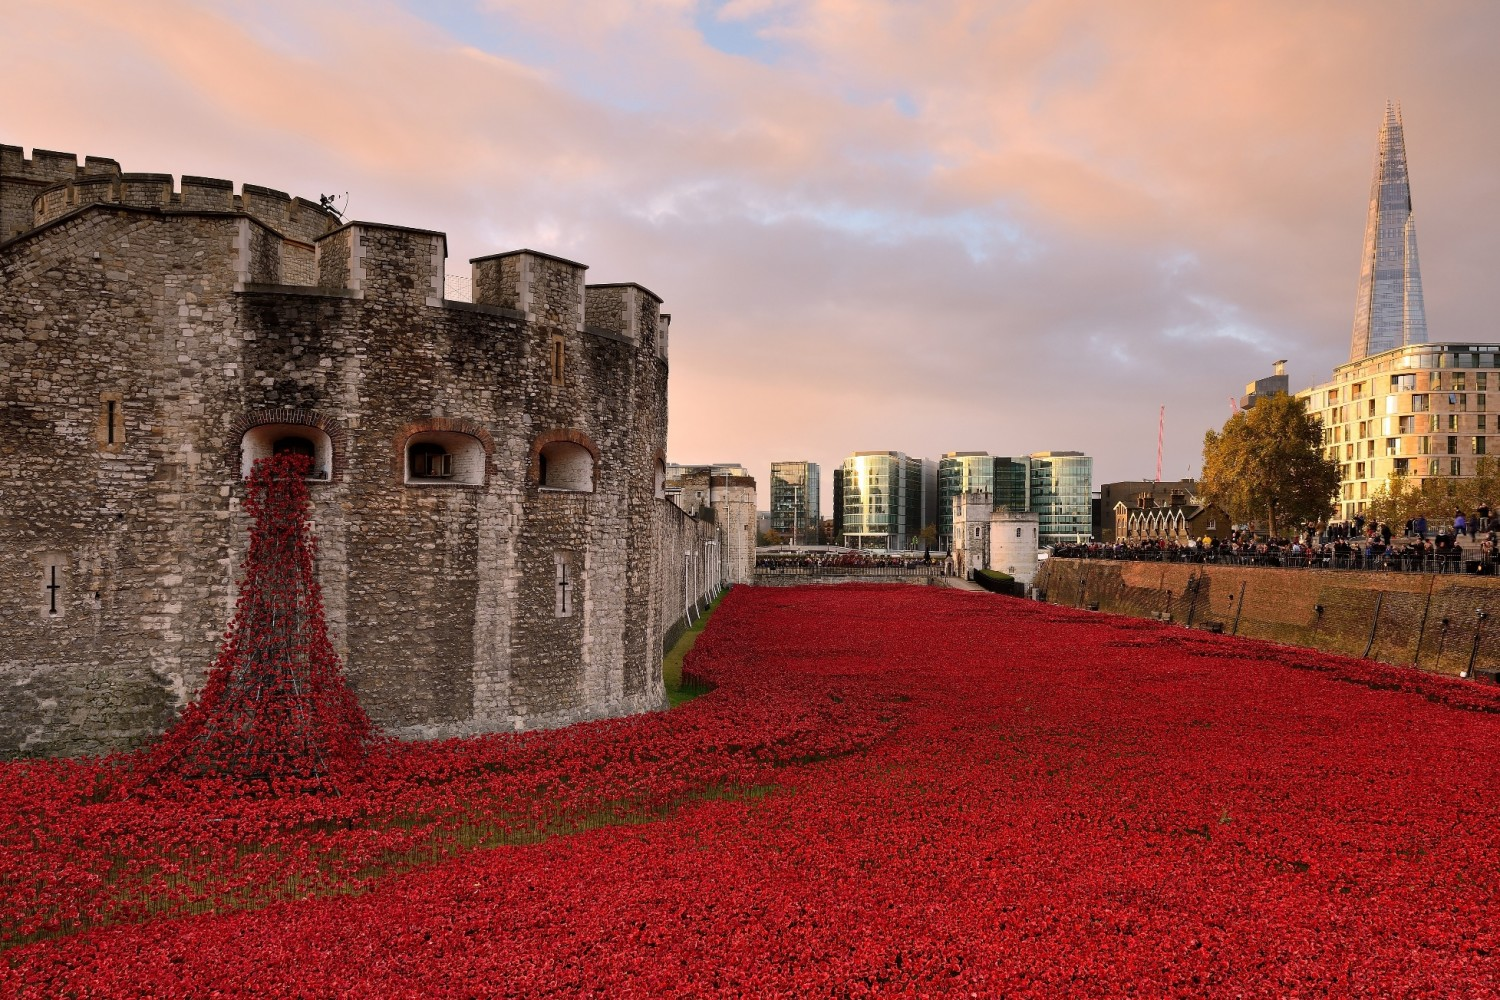 20 Jaw-Dropping Red Poppy Photos In Honor Of Remembrance Day